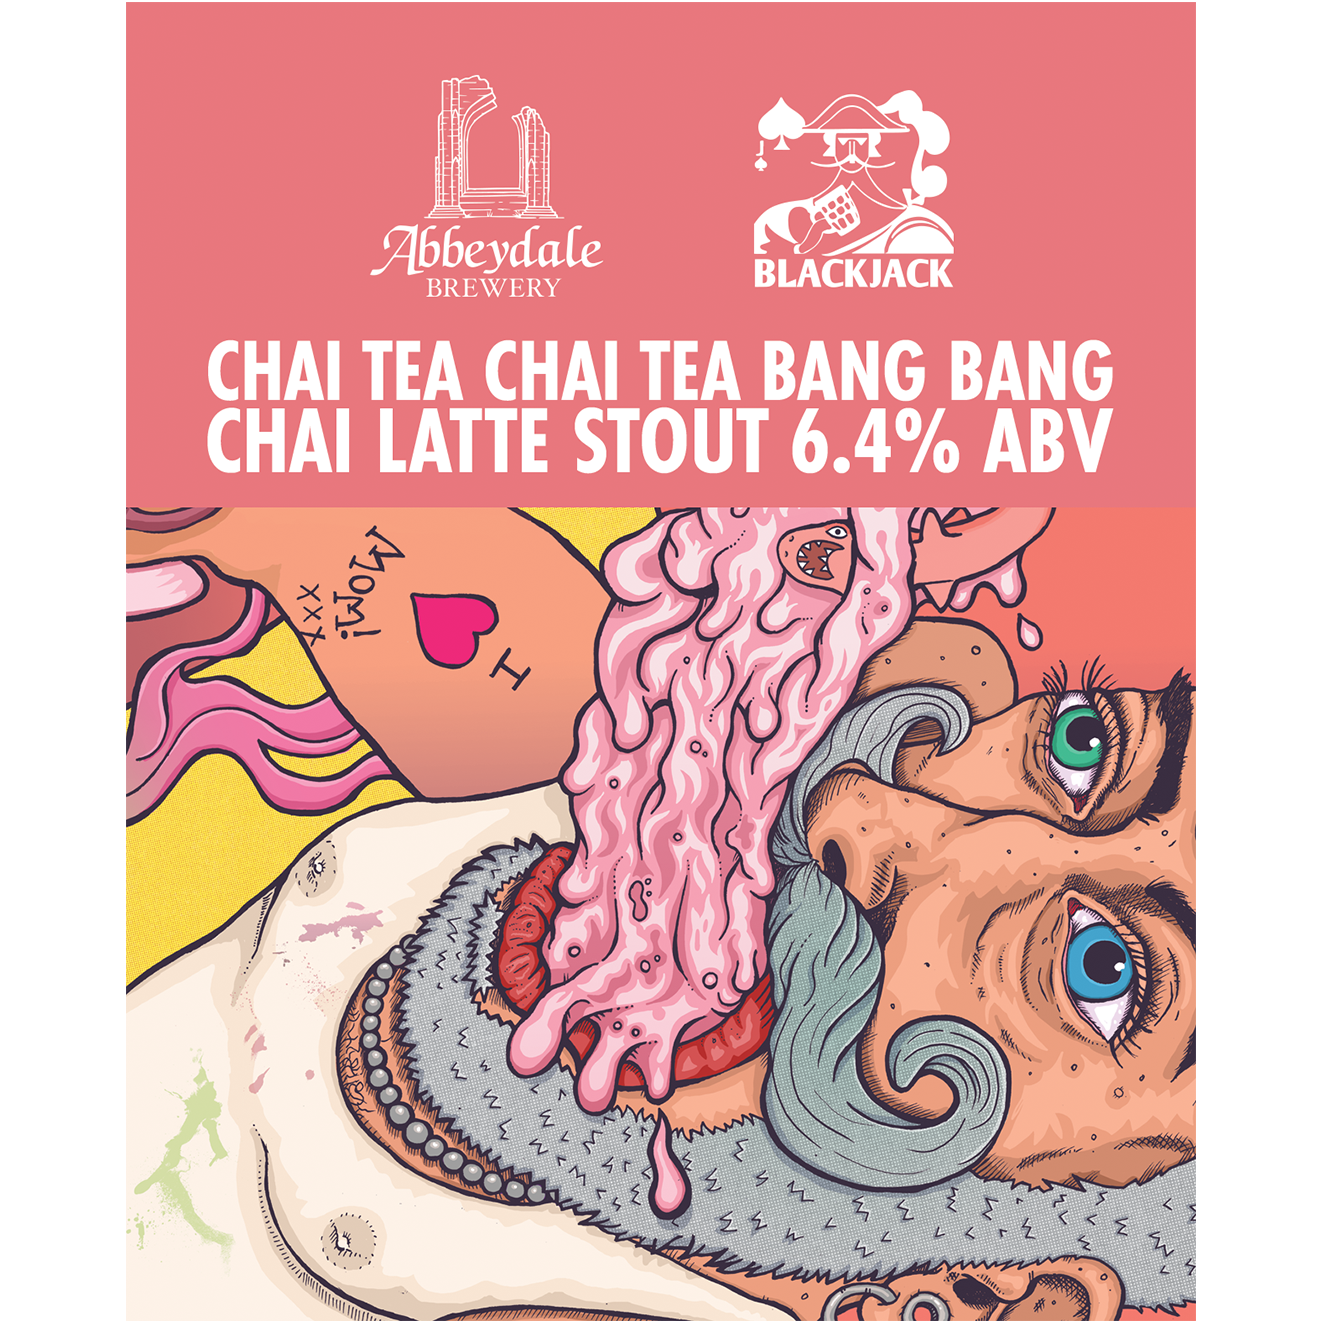 Craft Beer Label Illustration - Abbeydale Brewery - Black Jack Brewery - Chai Tea Chai Tea Bang Bang - Chai Latte Stout Cask Artwork